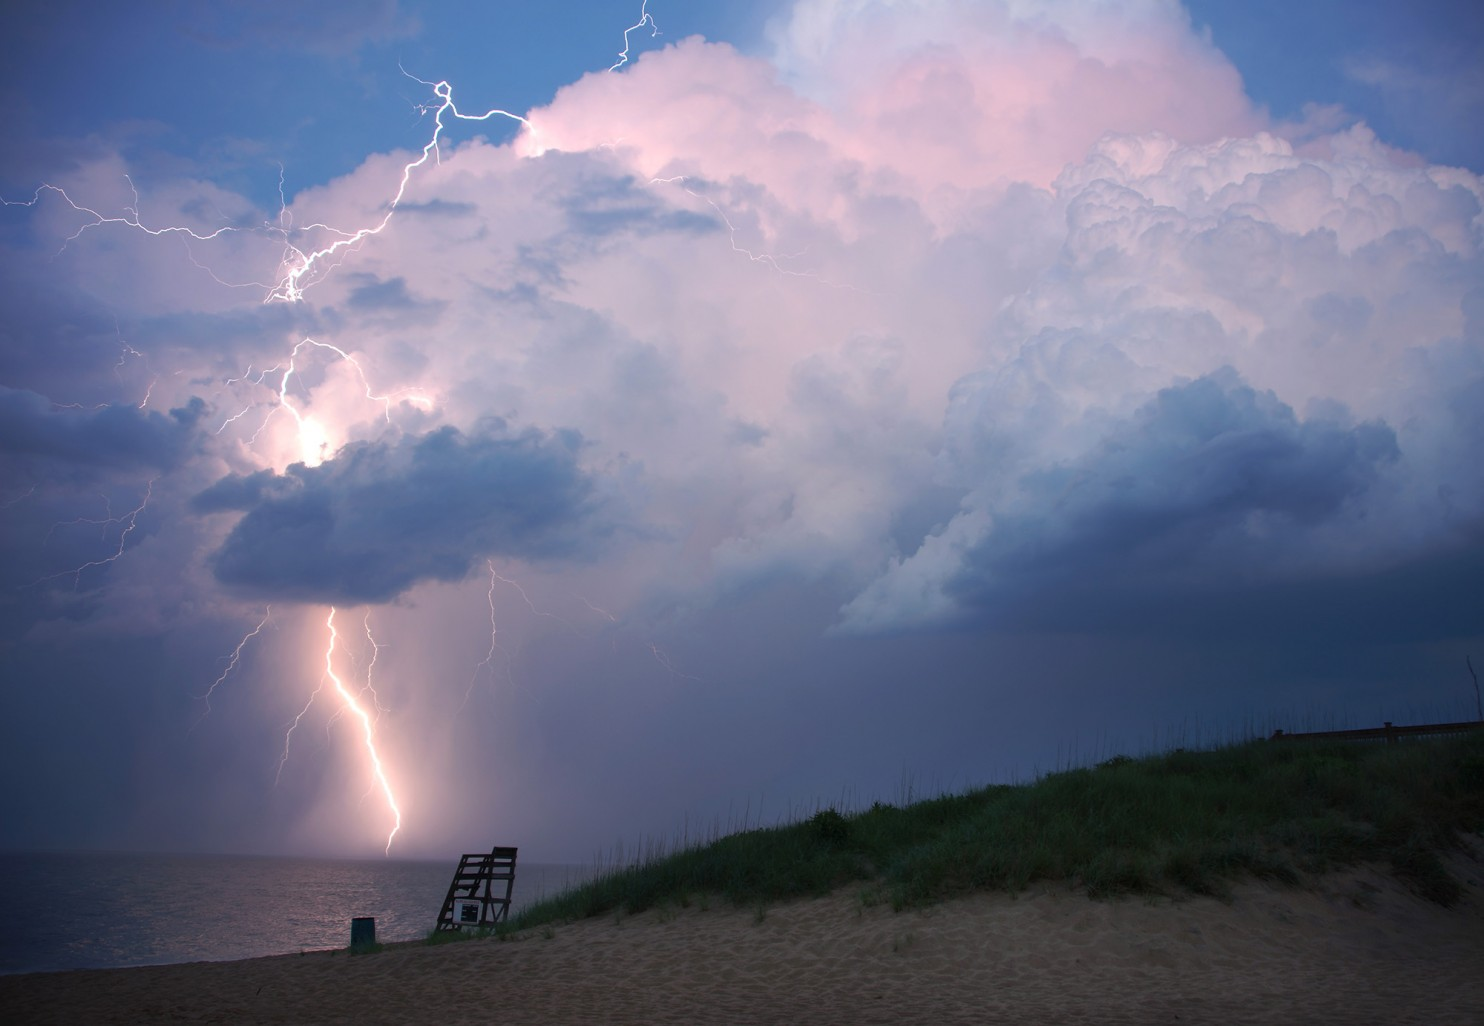 A small thunderstorm during sunset at Kill Devil Hills, North Carolina, June 12, 2016. Photo credit: Kevin Ambrose